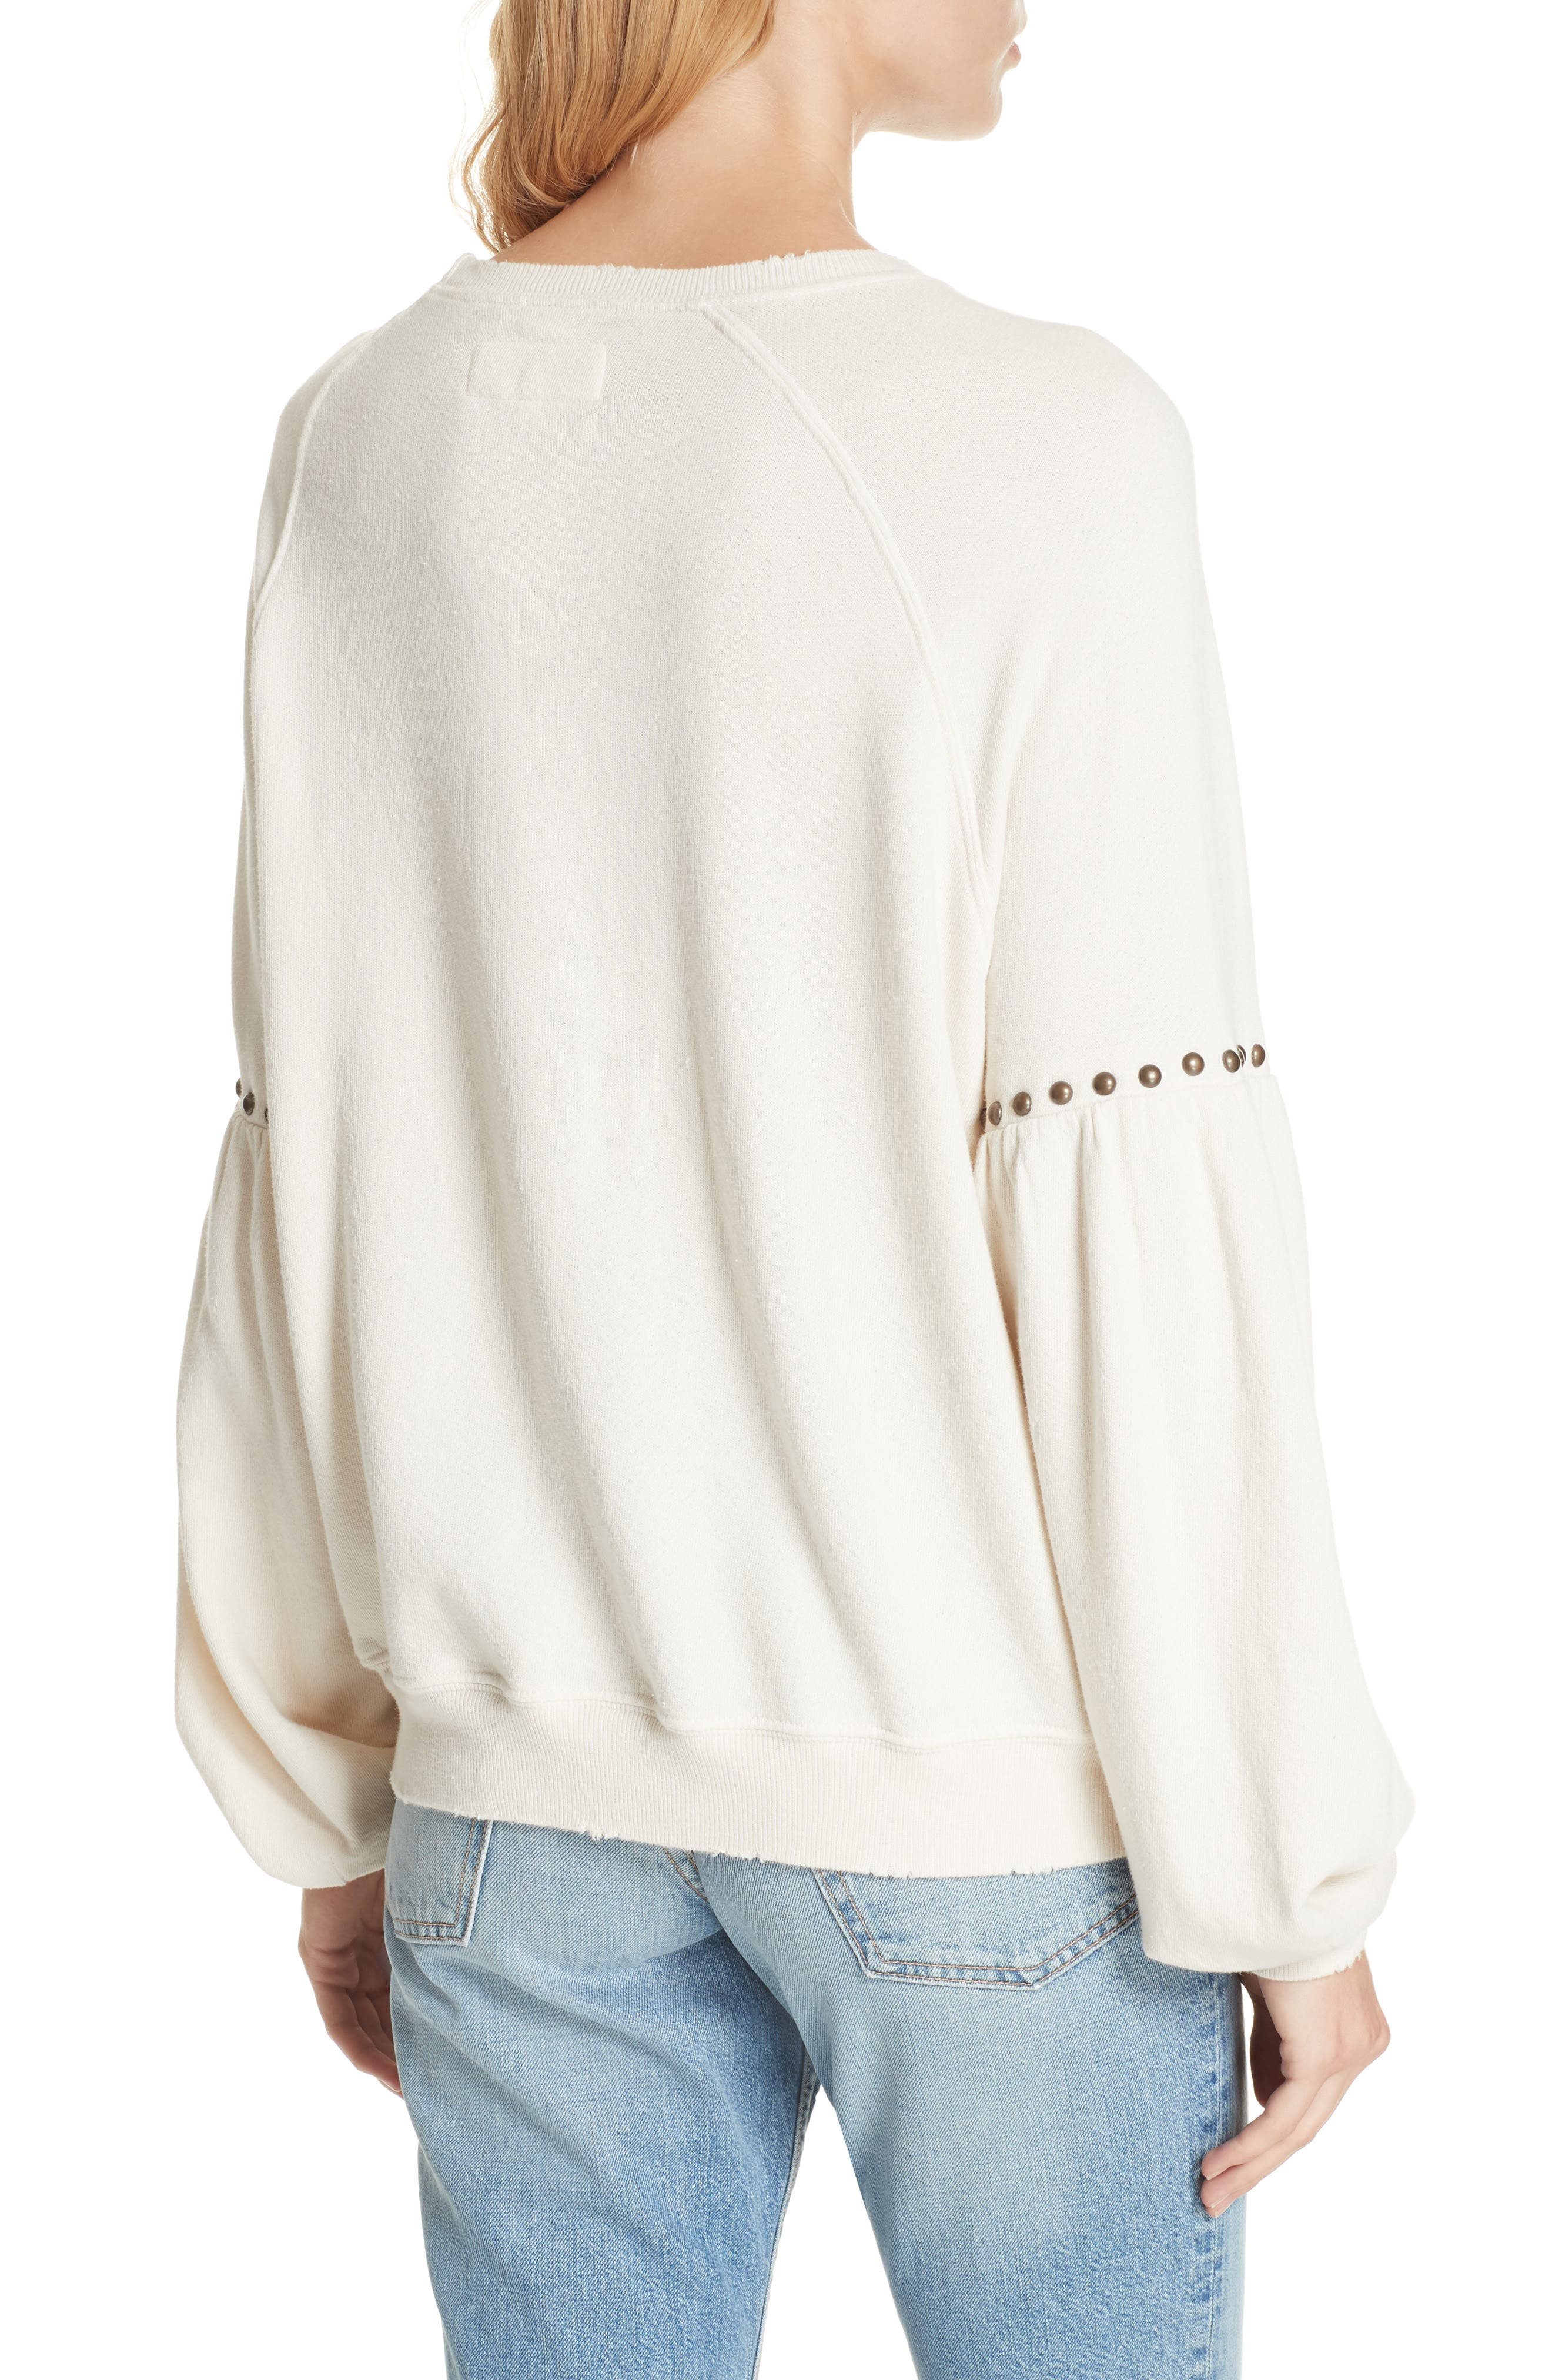 The Bishop Sleeve Studded Sweatshirt,                             Alternate thumbnail 2, color,                             Washed White W/ Studs